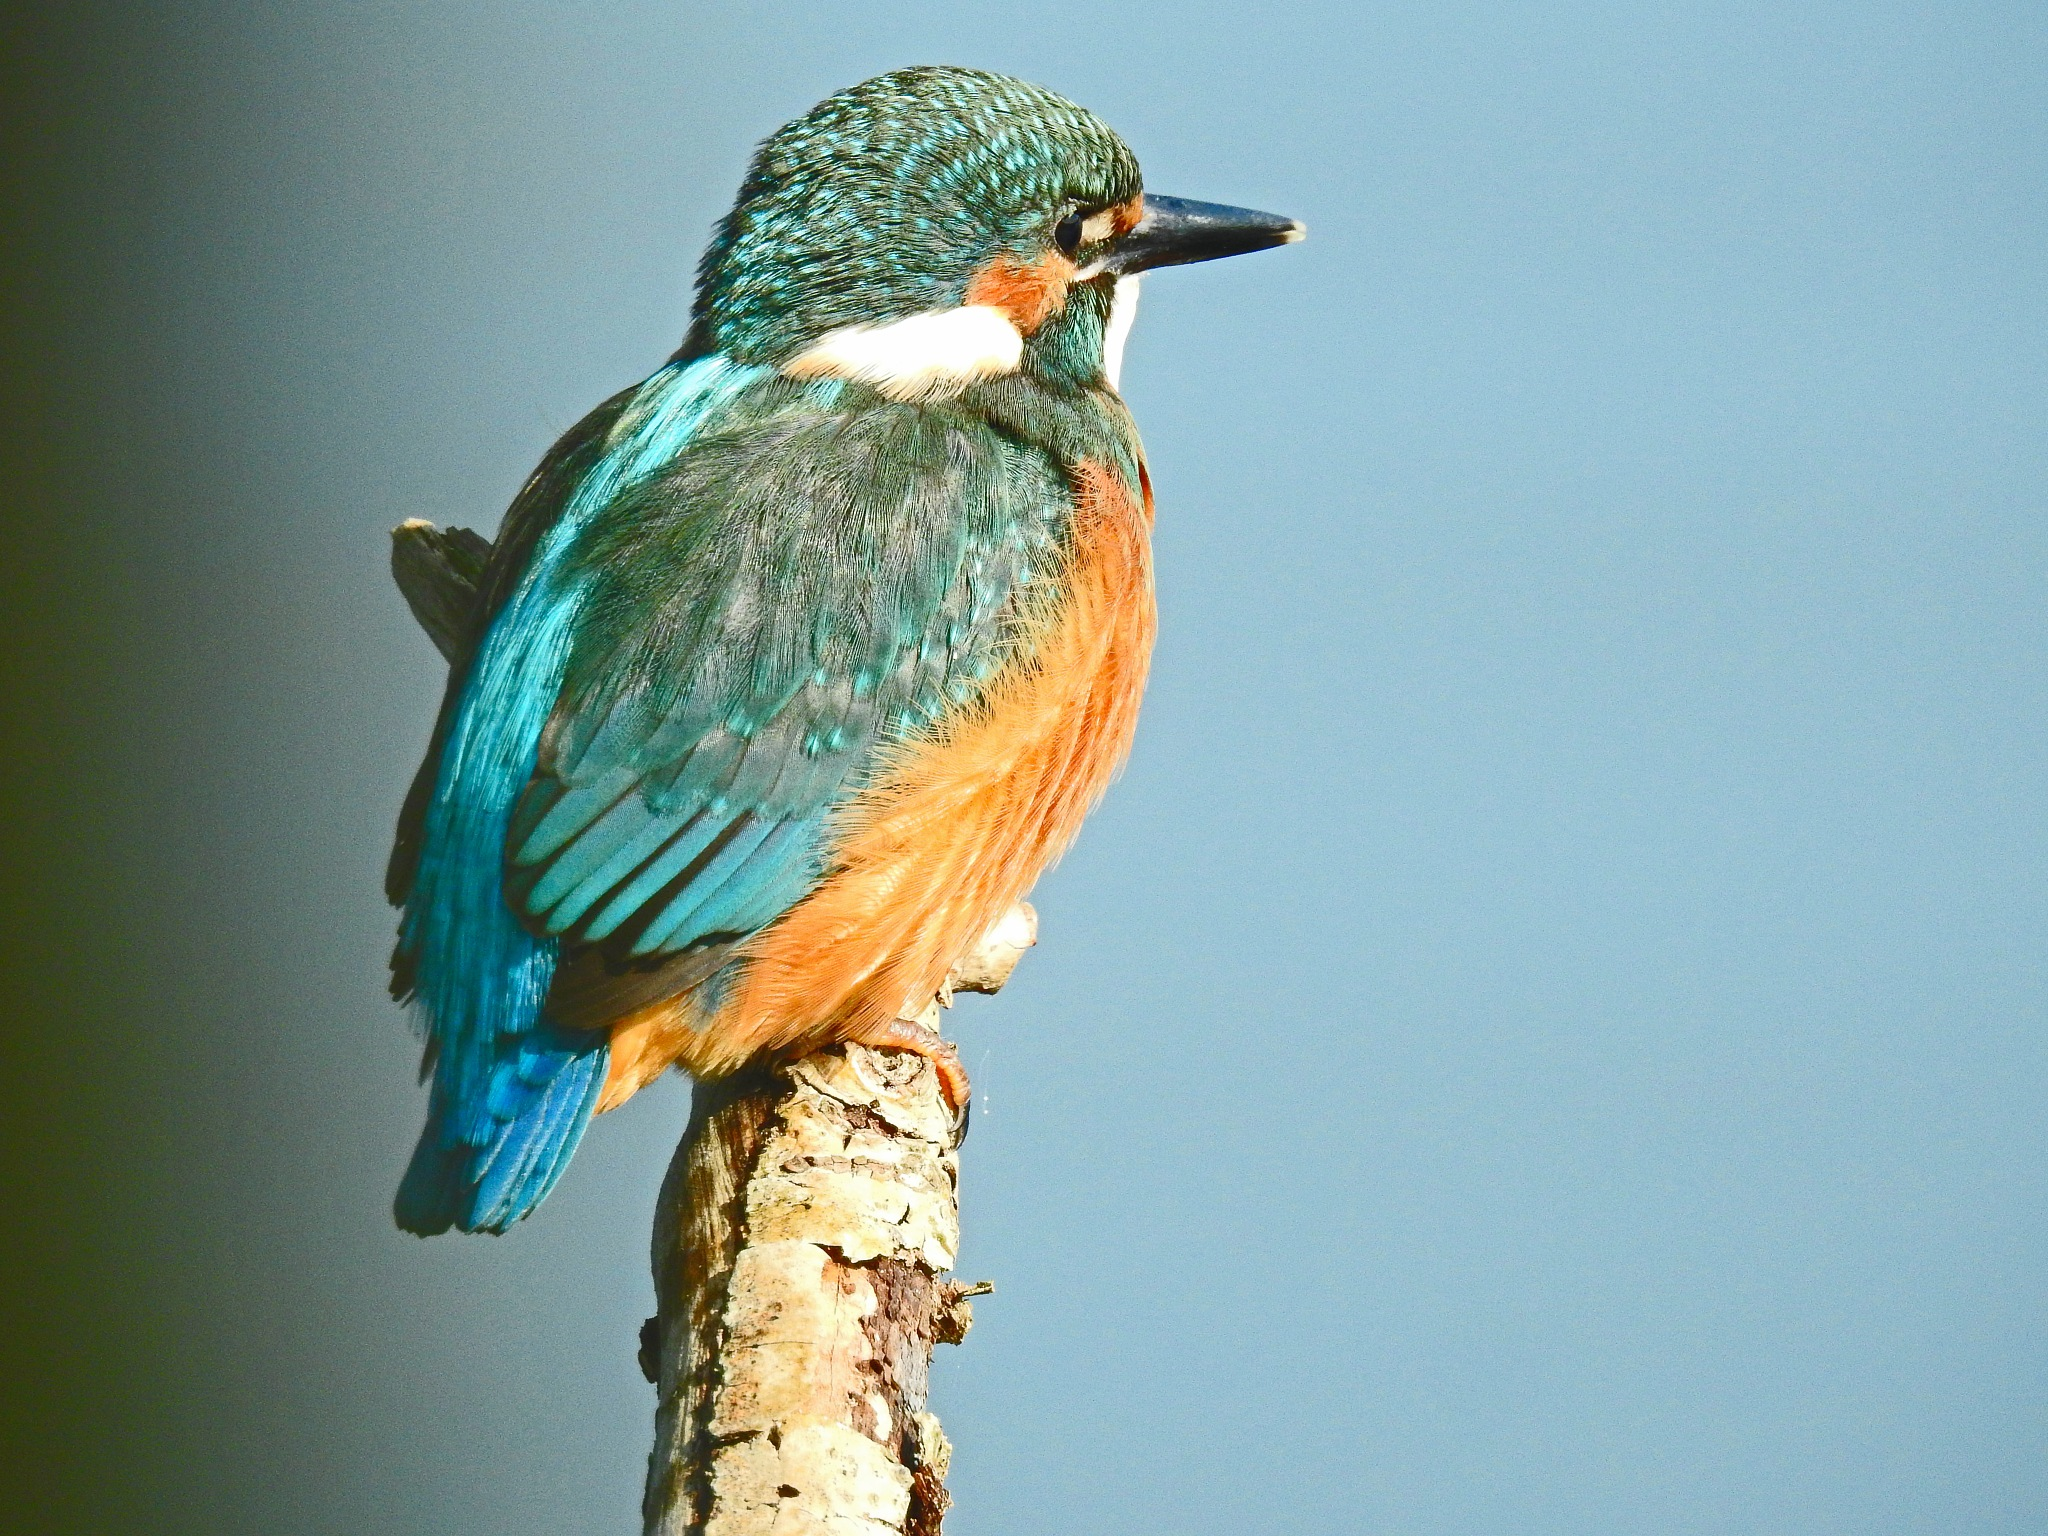 Kingfisher by Bob66